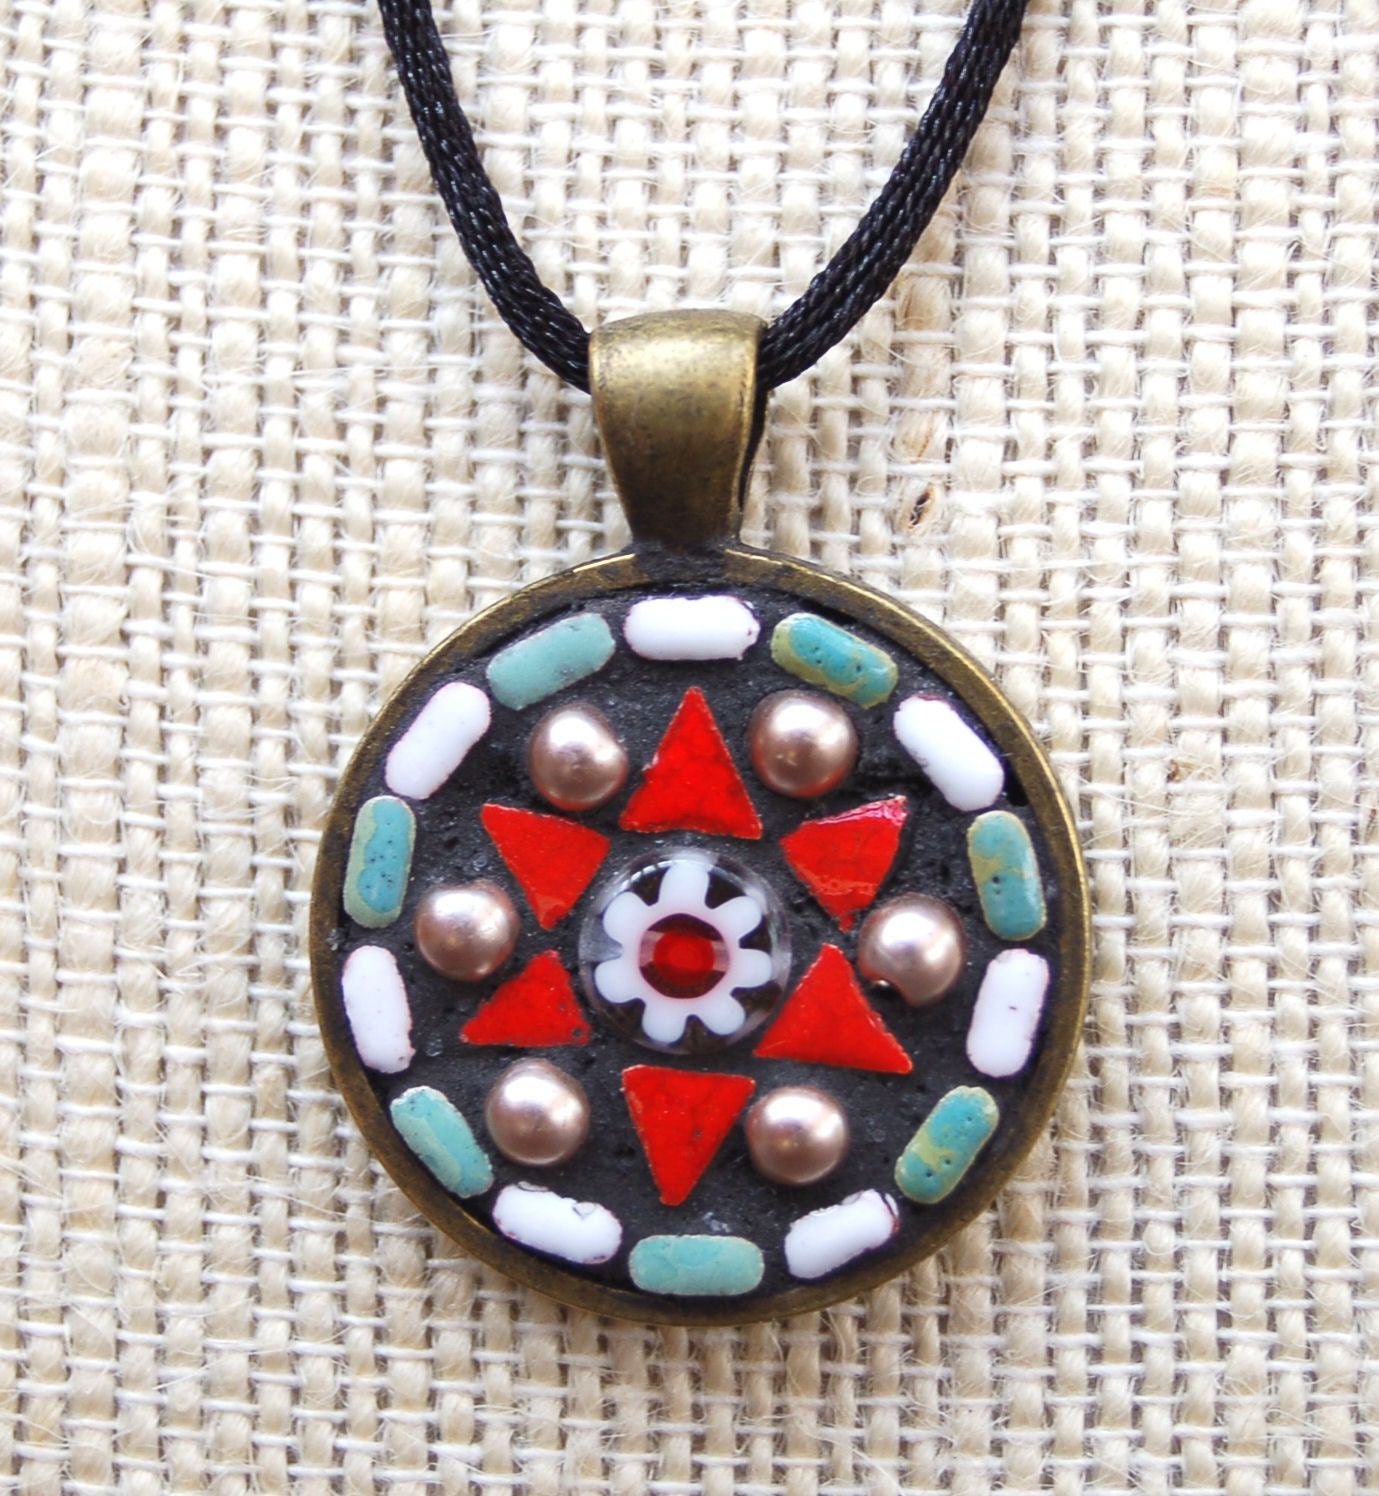 handmade mosaic tile pendant necklace by